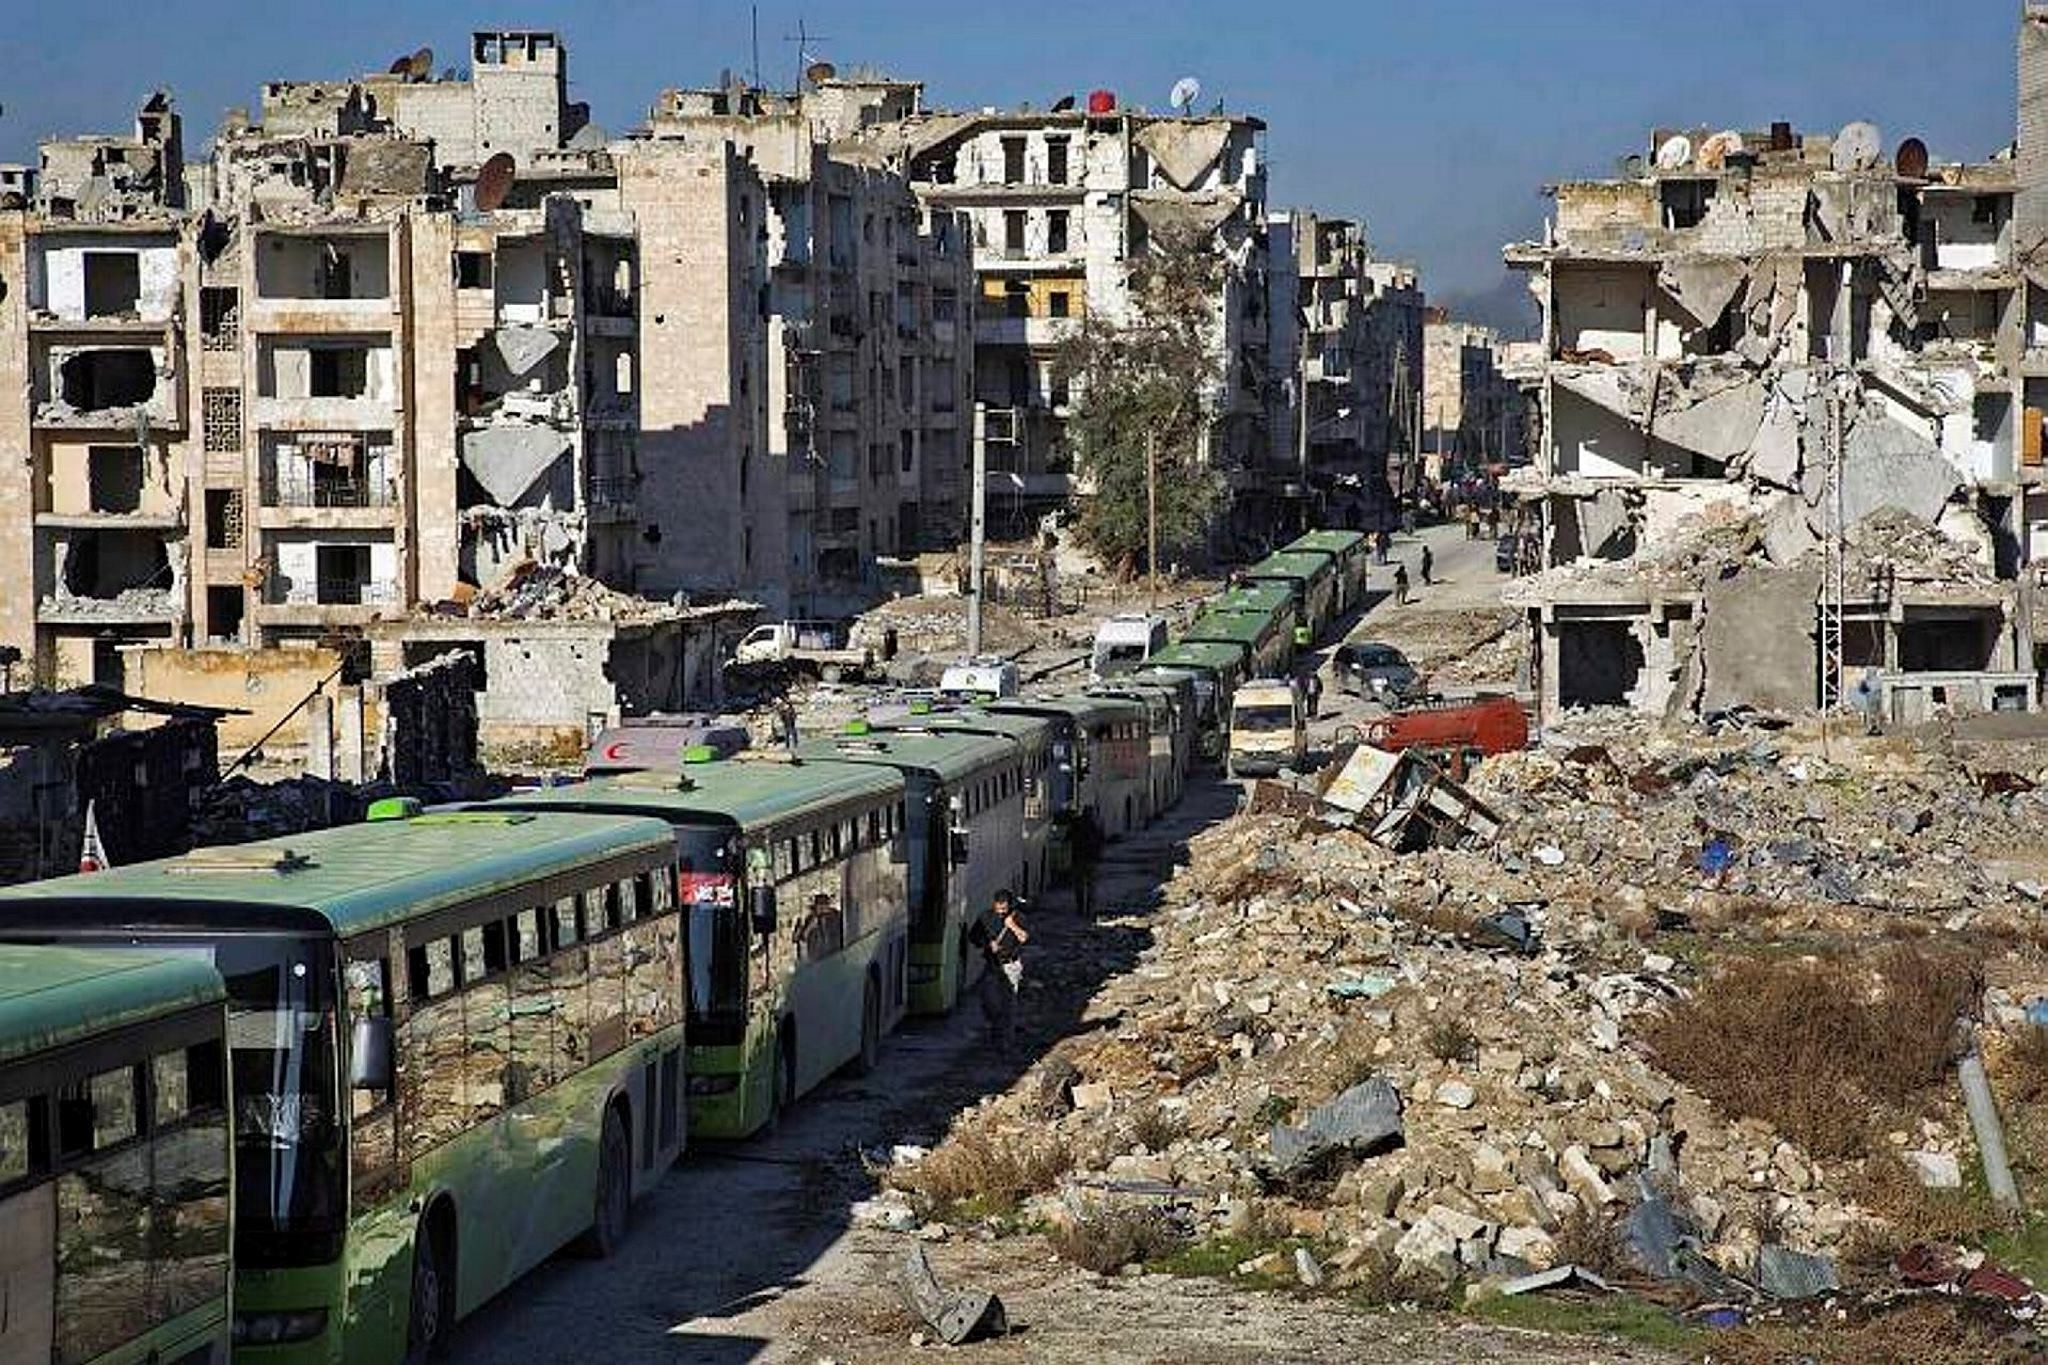 Buses are seen during an evacuation operation of opposition fighters and their families from opposition-held neighbourhoods in the embattled city of Aleppo, Dec. 15